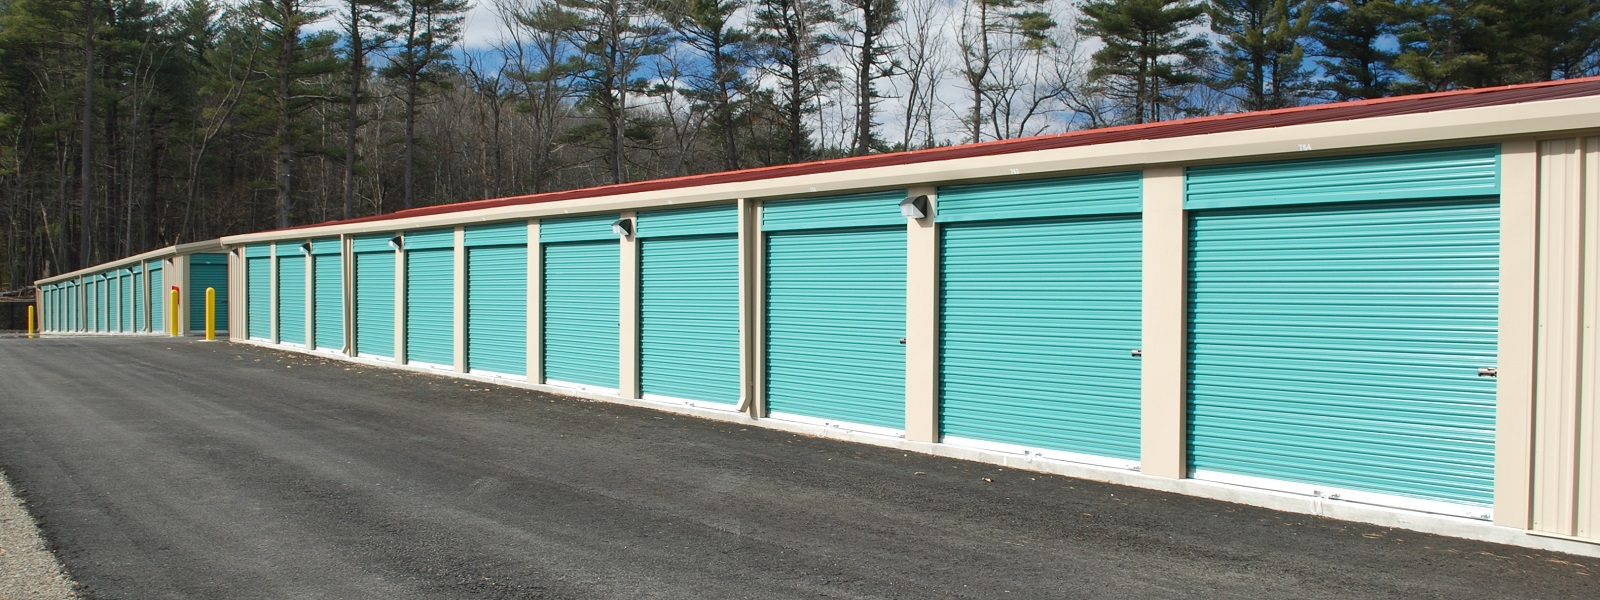 Ordinaire ... Storage | Mini Storage In Tyngsboro | Mini Storage In Tyngsborough |  Cheap Self Storage Tyngsborough MA | Self Sstorage Nashua NH|Self Storage  Hudson NH